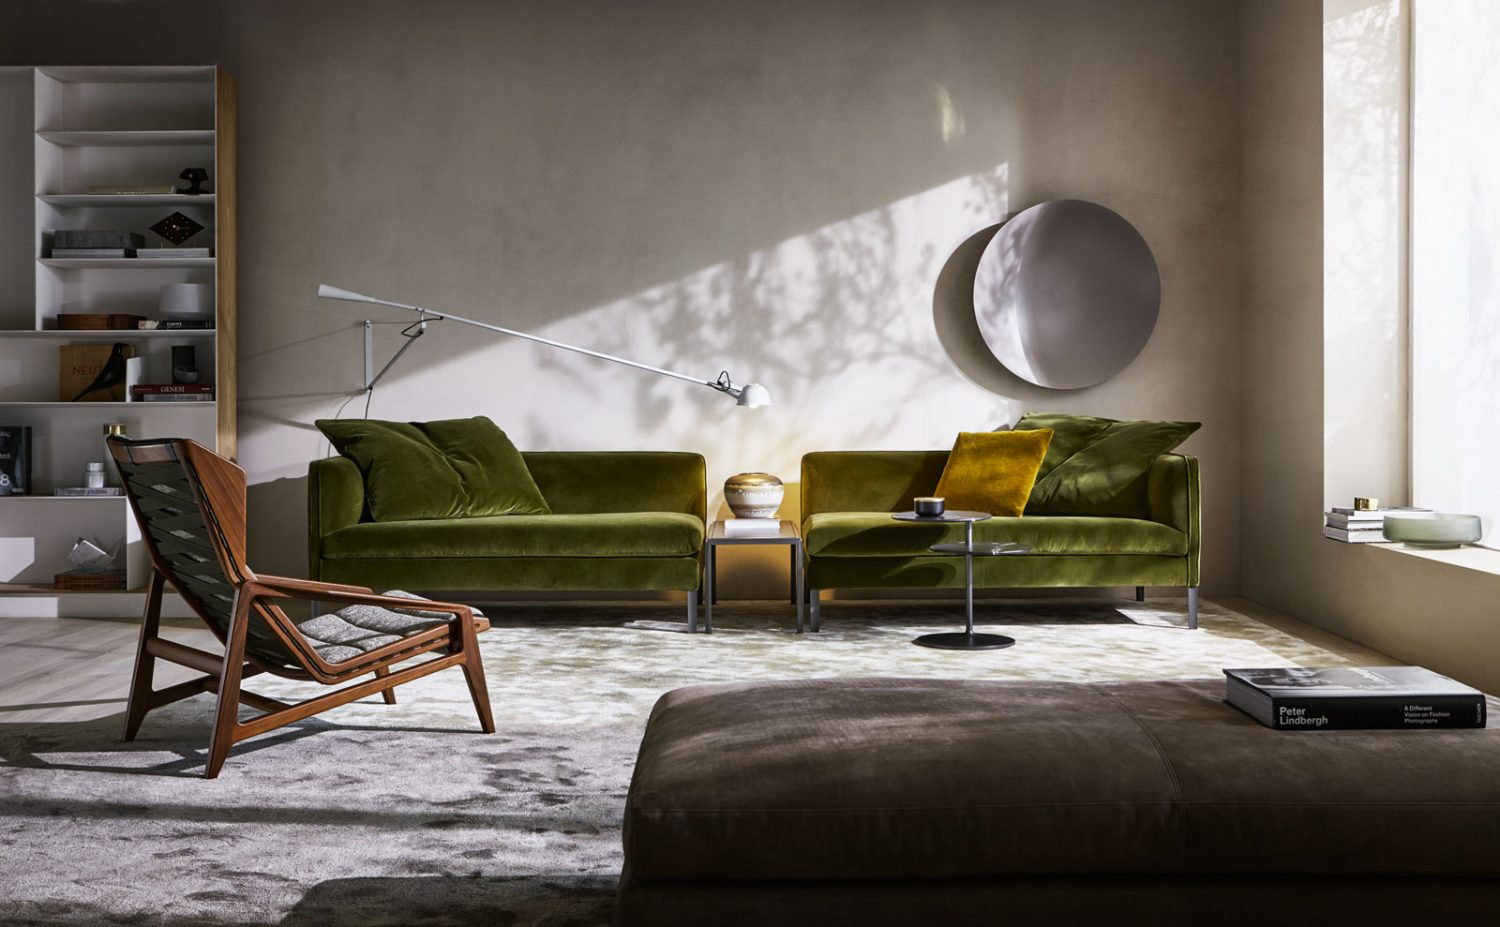 molteni at Milan Design Week milan design week MILAN DESIGN WEEK/FUORISALONE 2019 – BEST EVENTS & PARTIES molteni